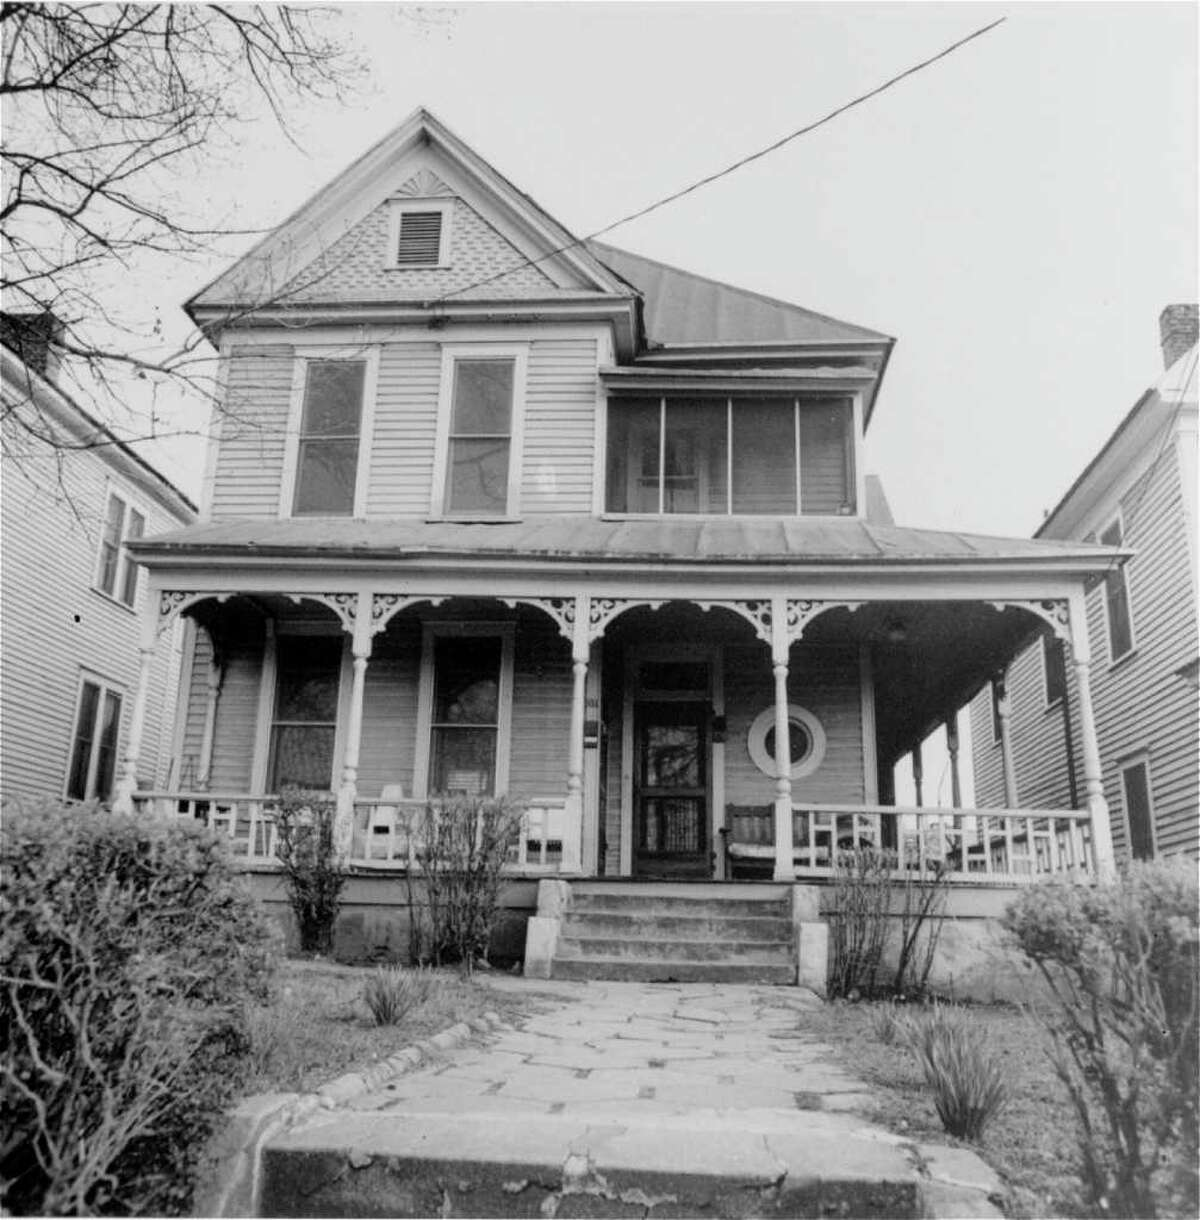 An undated picture of Dr. Martin Luther King, Jr.'s birthplace, 501 Auburn Avenue N.E., Atlanta, Ga. Dr. King was born here, January 15, 1929. (AP Photo)